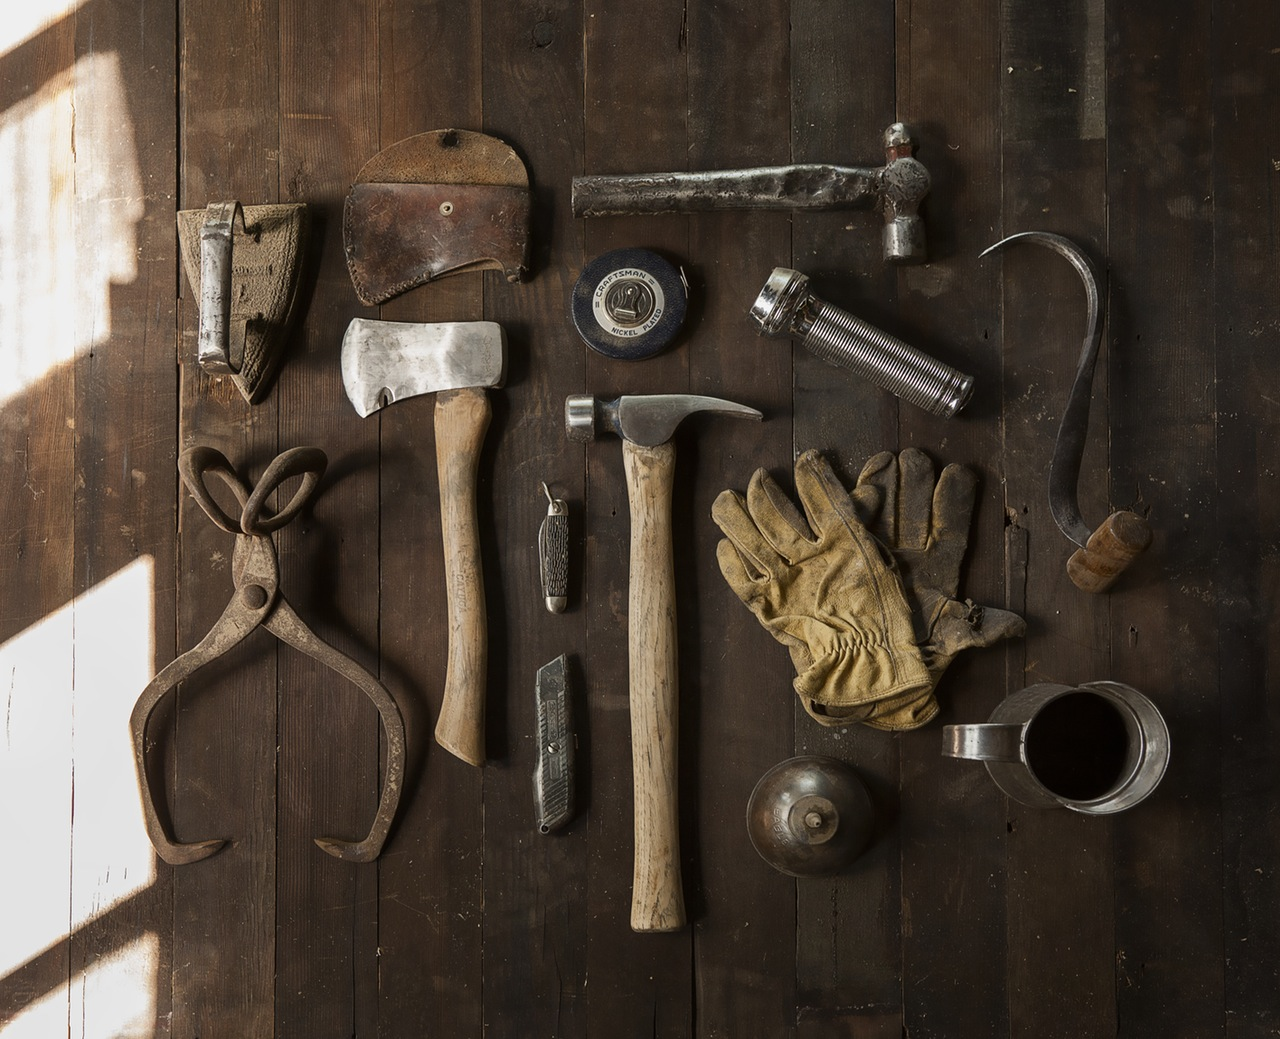 construction-work-carpenter-tools-1